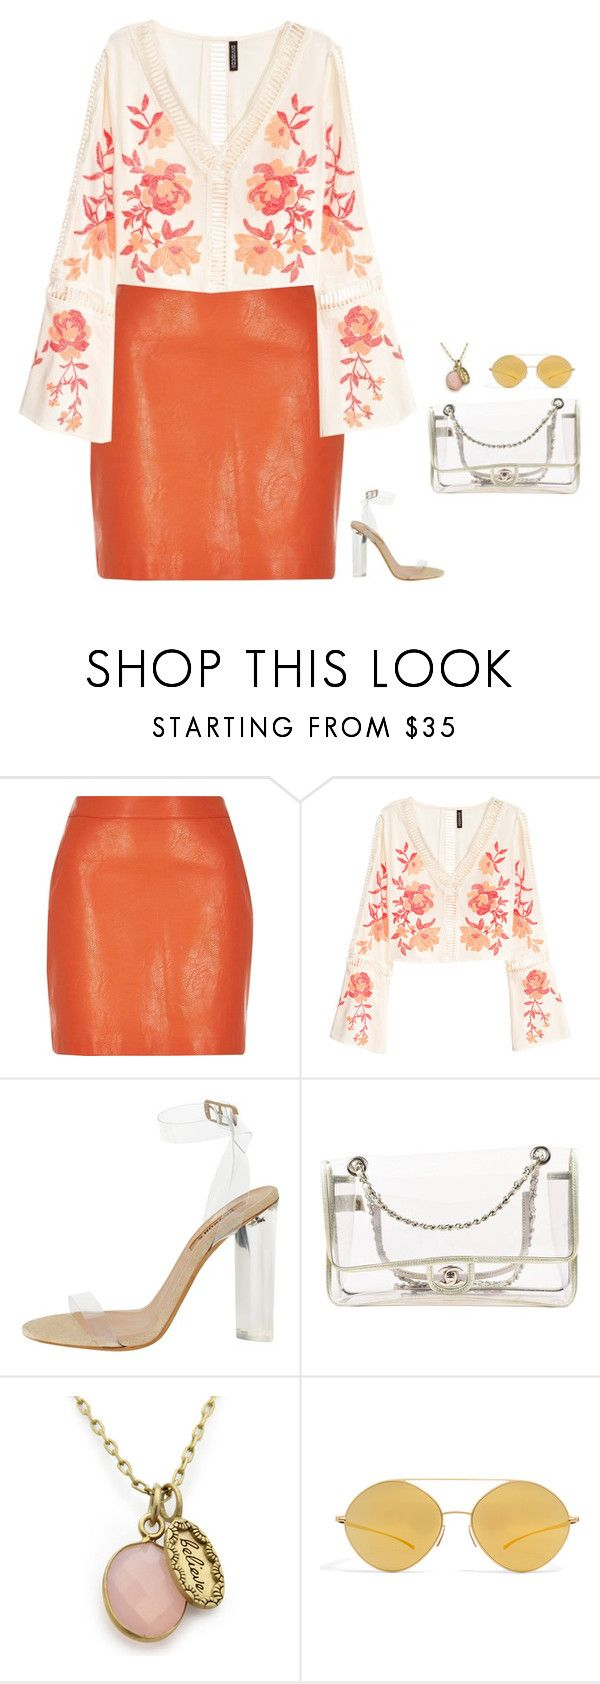 """""""#3142"""" by azaliyan ❤ liked on Polyvore featuring River Island, adidas Originals, Chanel and Mykita"""